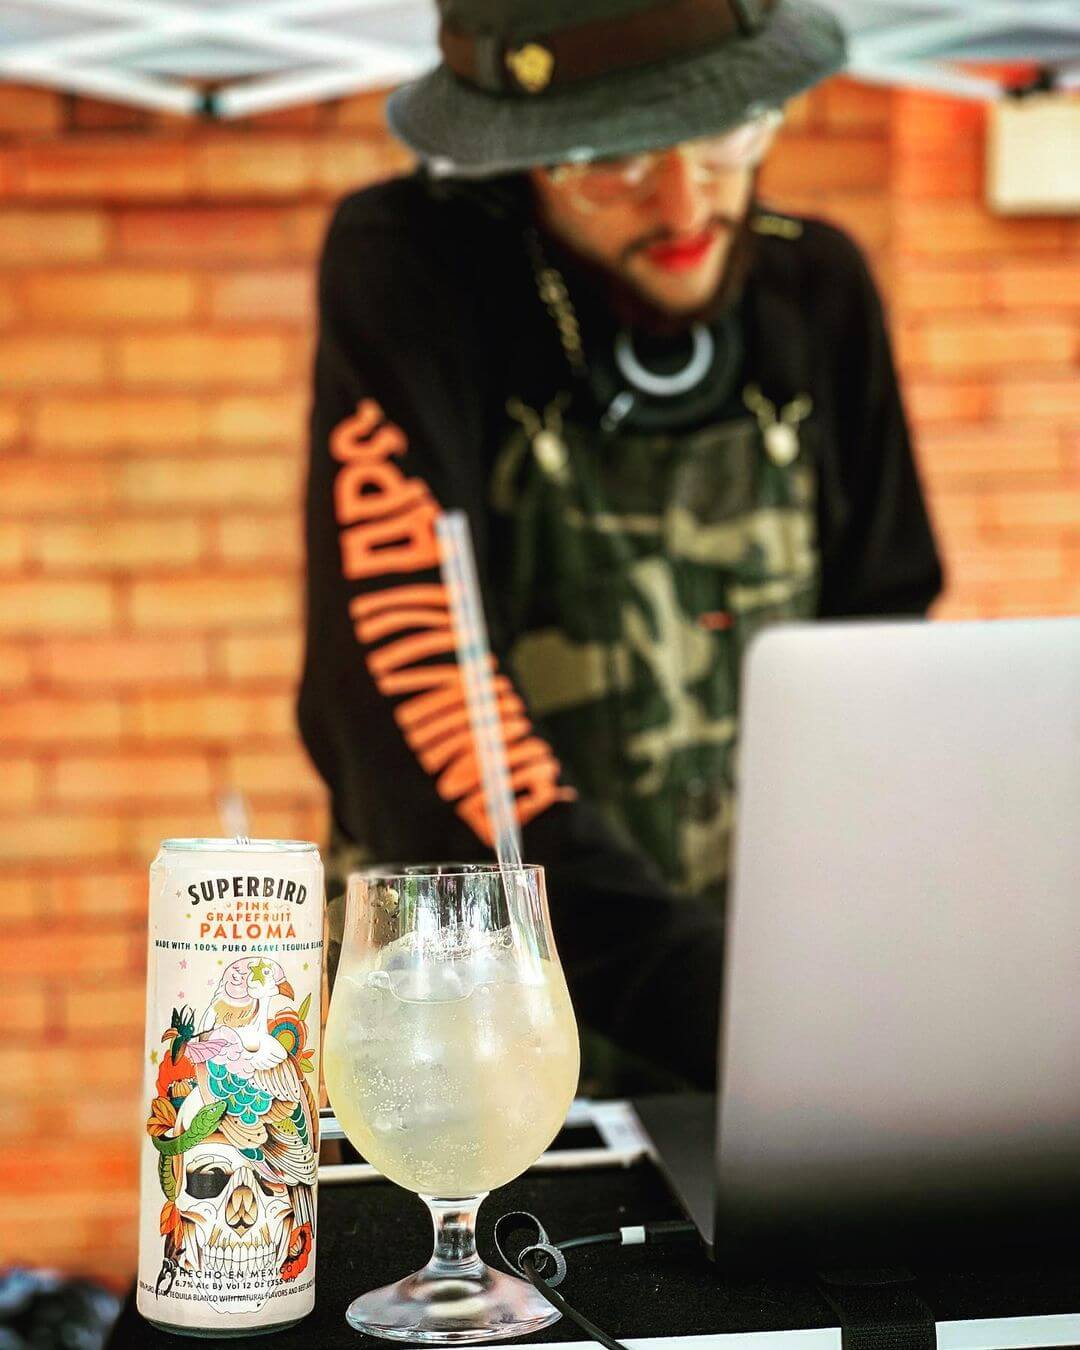 A man DJing behind a laptop with a glass of Superbird Paloma in front of him.